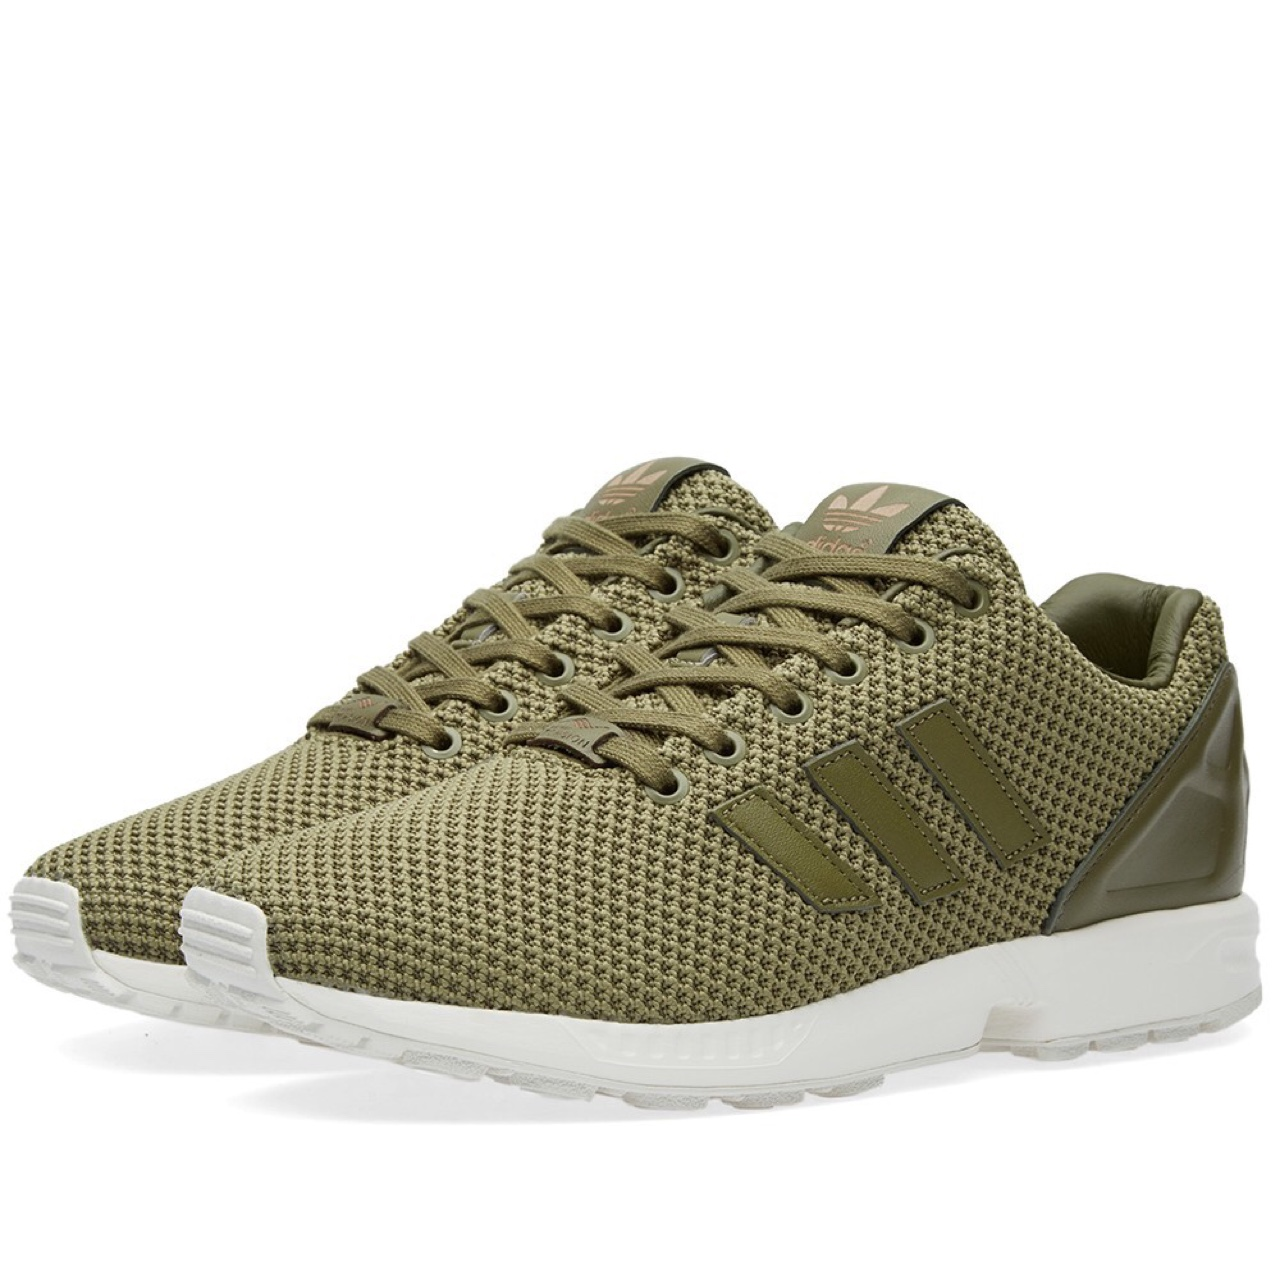 huge selection of d5d18 a0f16 Olive green adidas ZX flux. Only been worn about 2-3... - Depop